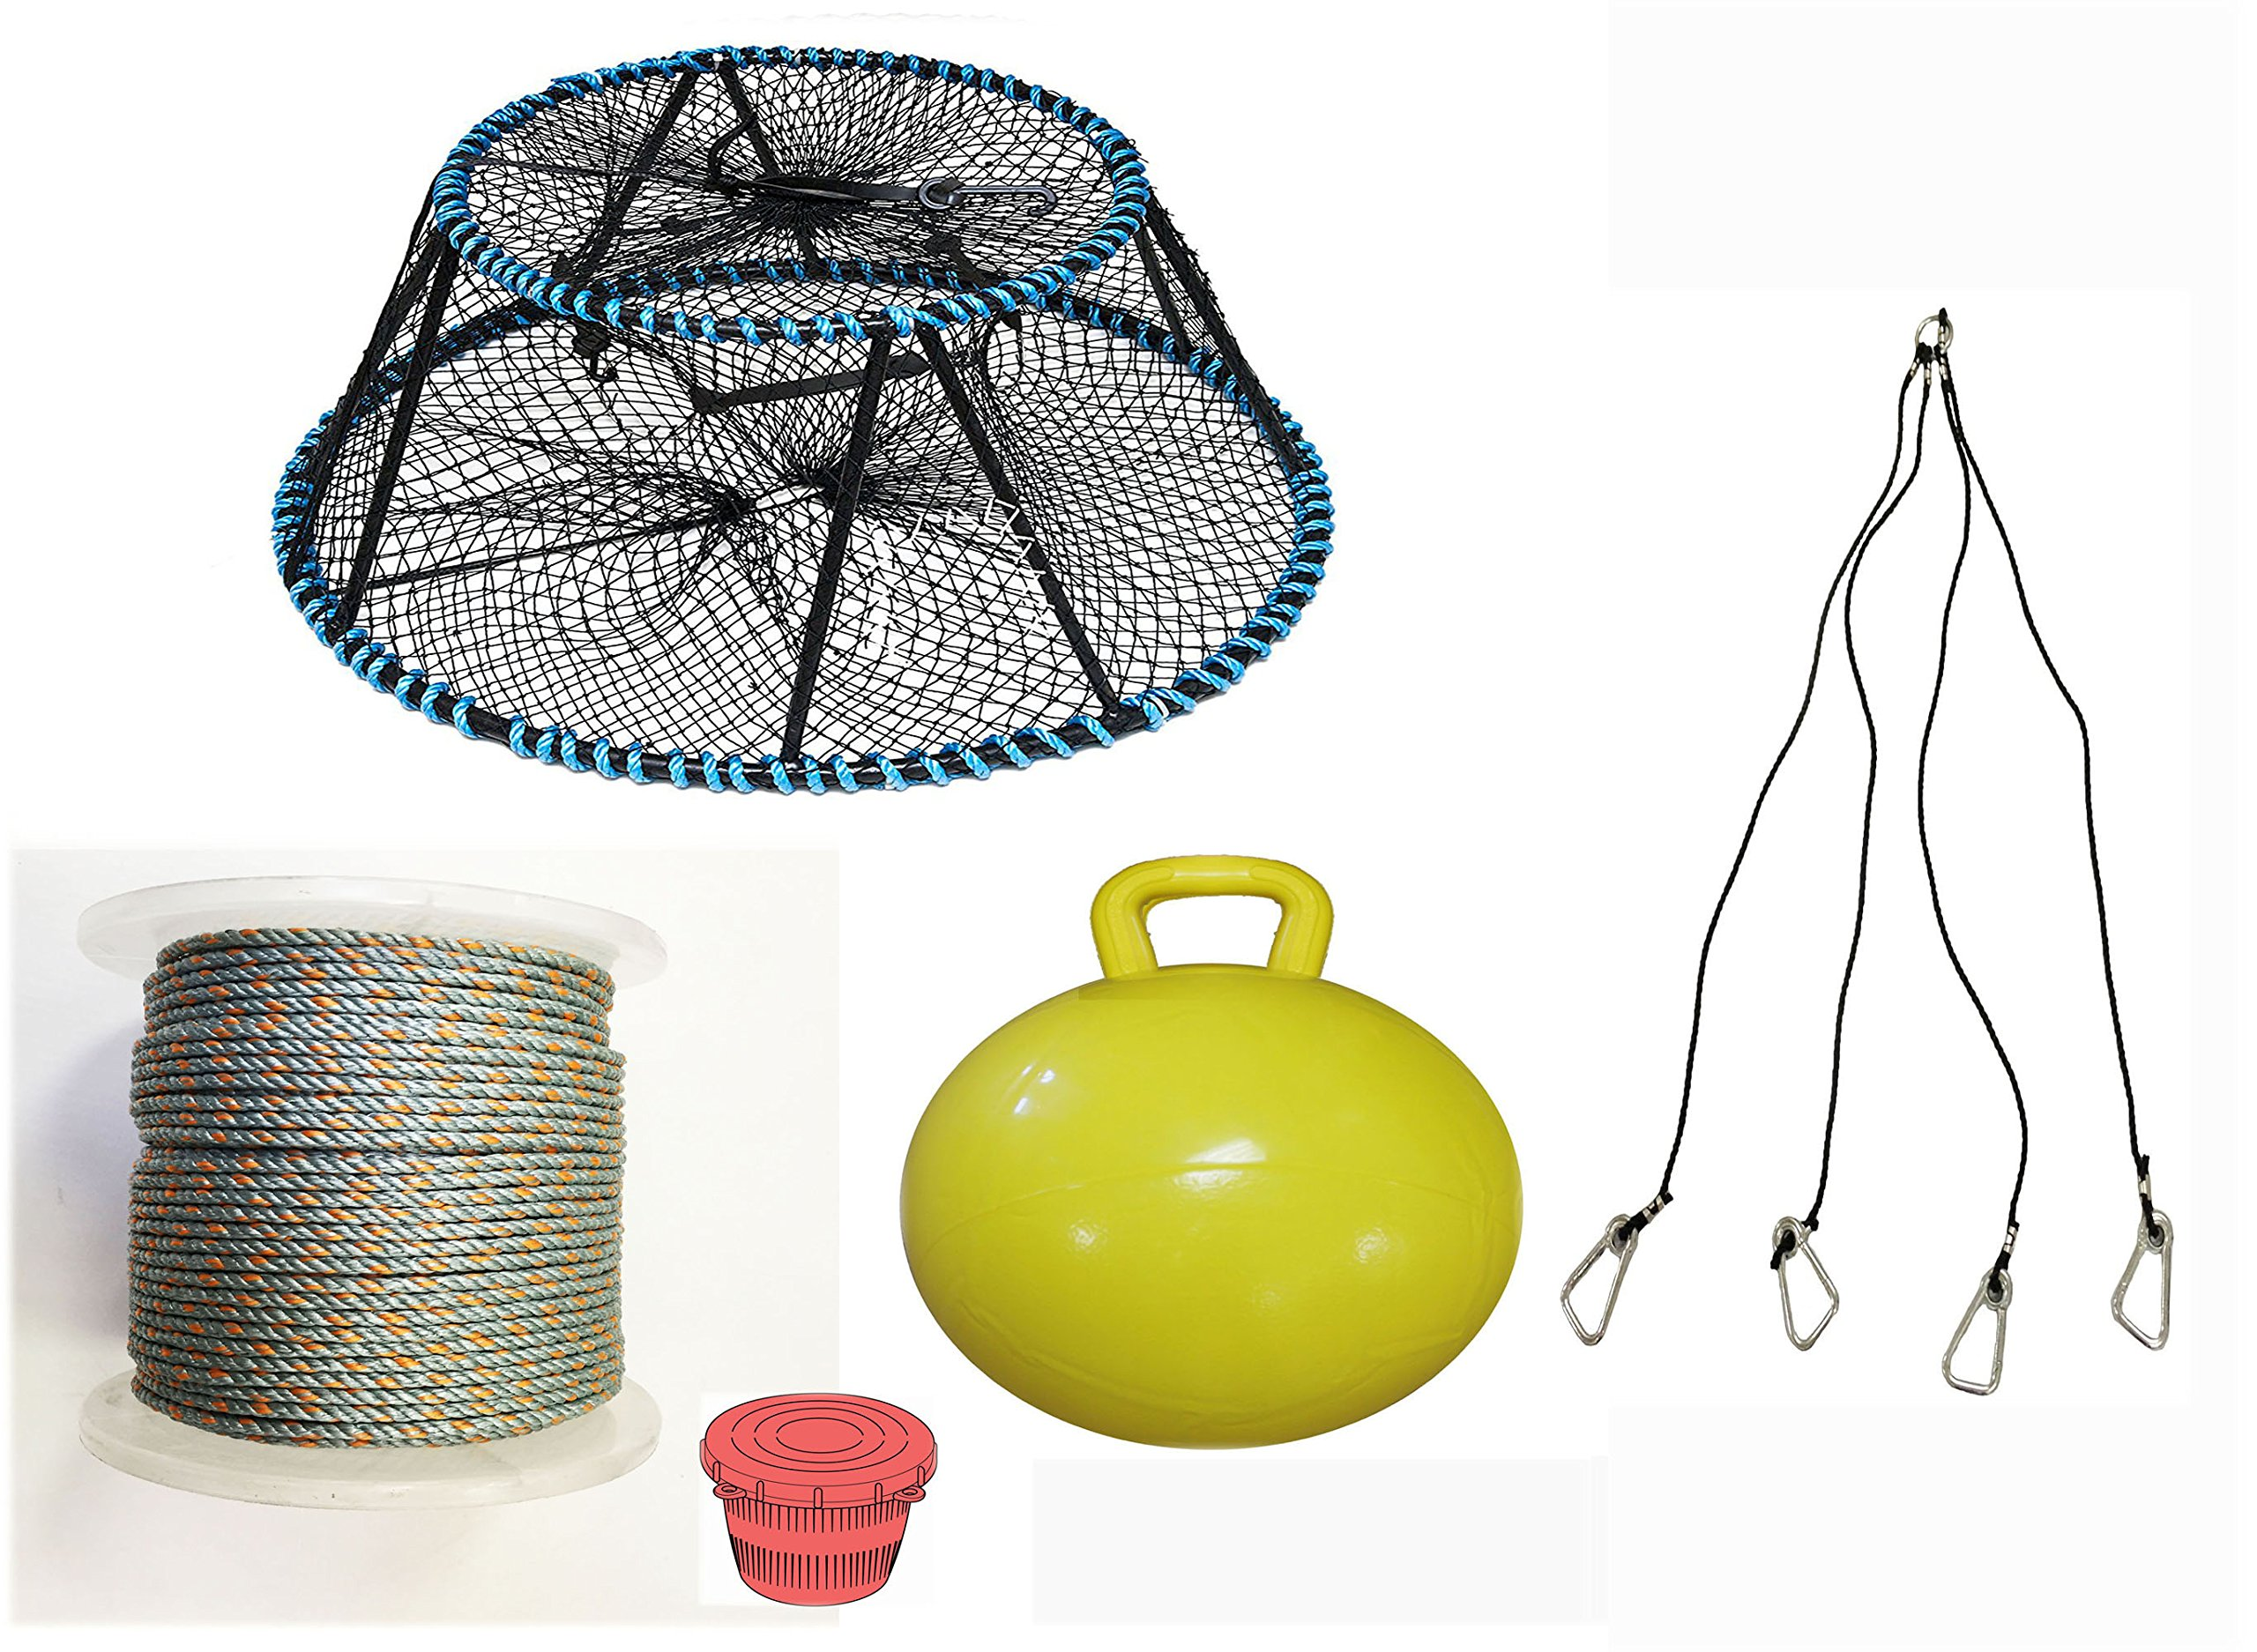 KUFA Sports Tower Style Prawn trap with 400' rope, Yellow float, Vented Bait Jar & Harness combo (CT150+PAQ5+HA5)